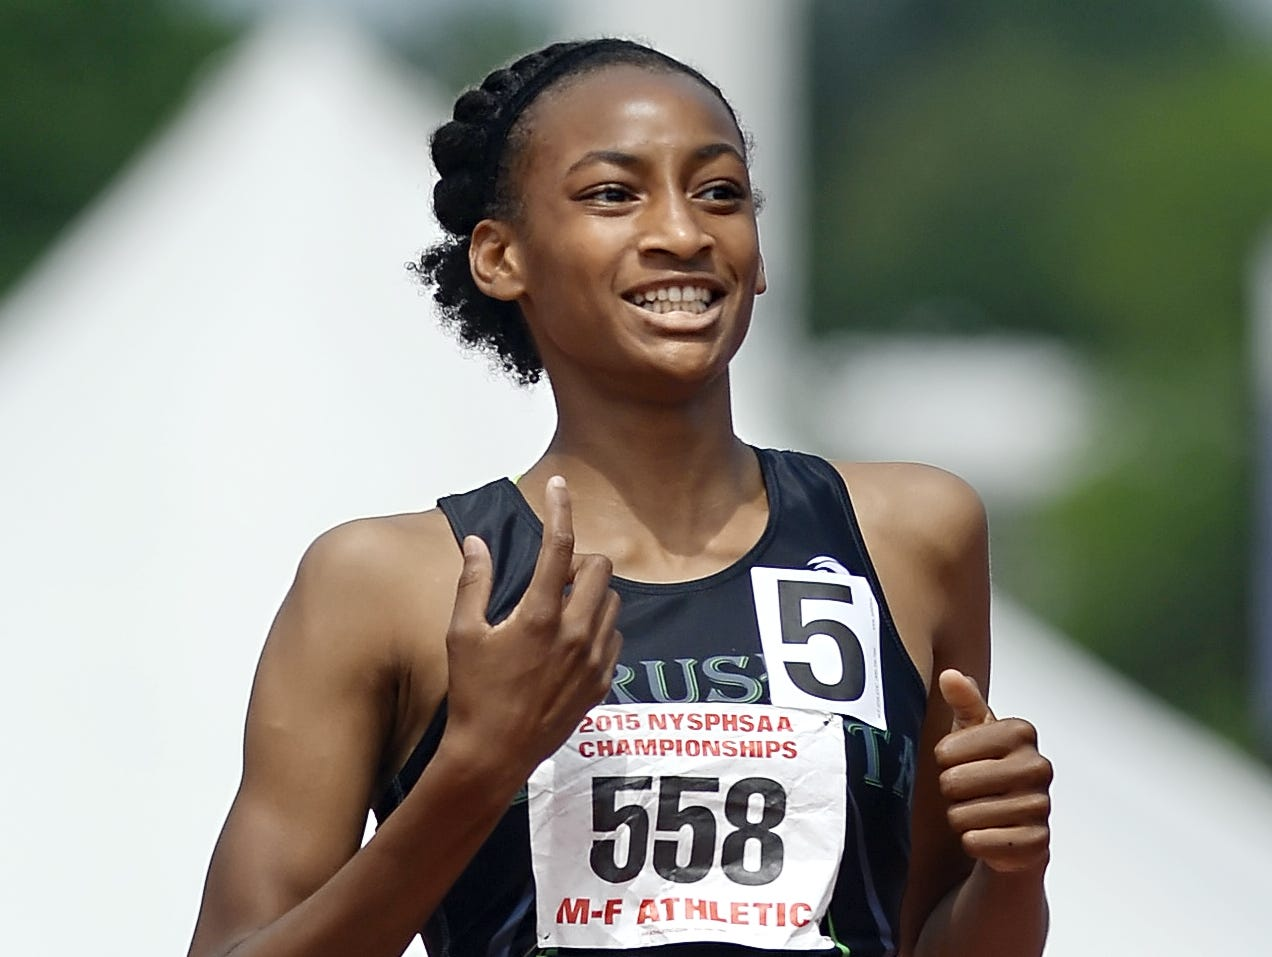 Rush-Henrietta's Sammy Watson won the girls 400 and 1,500 state championships near the end of the last high school outdoor track and field season.